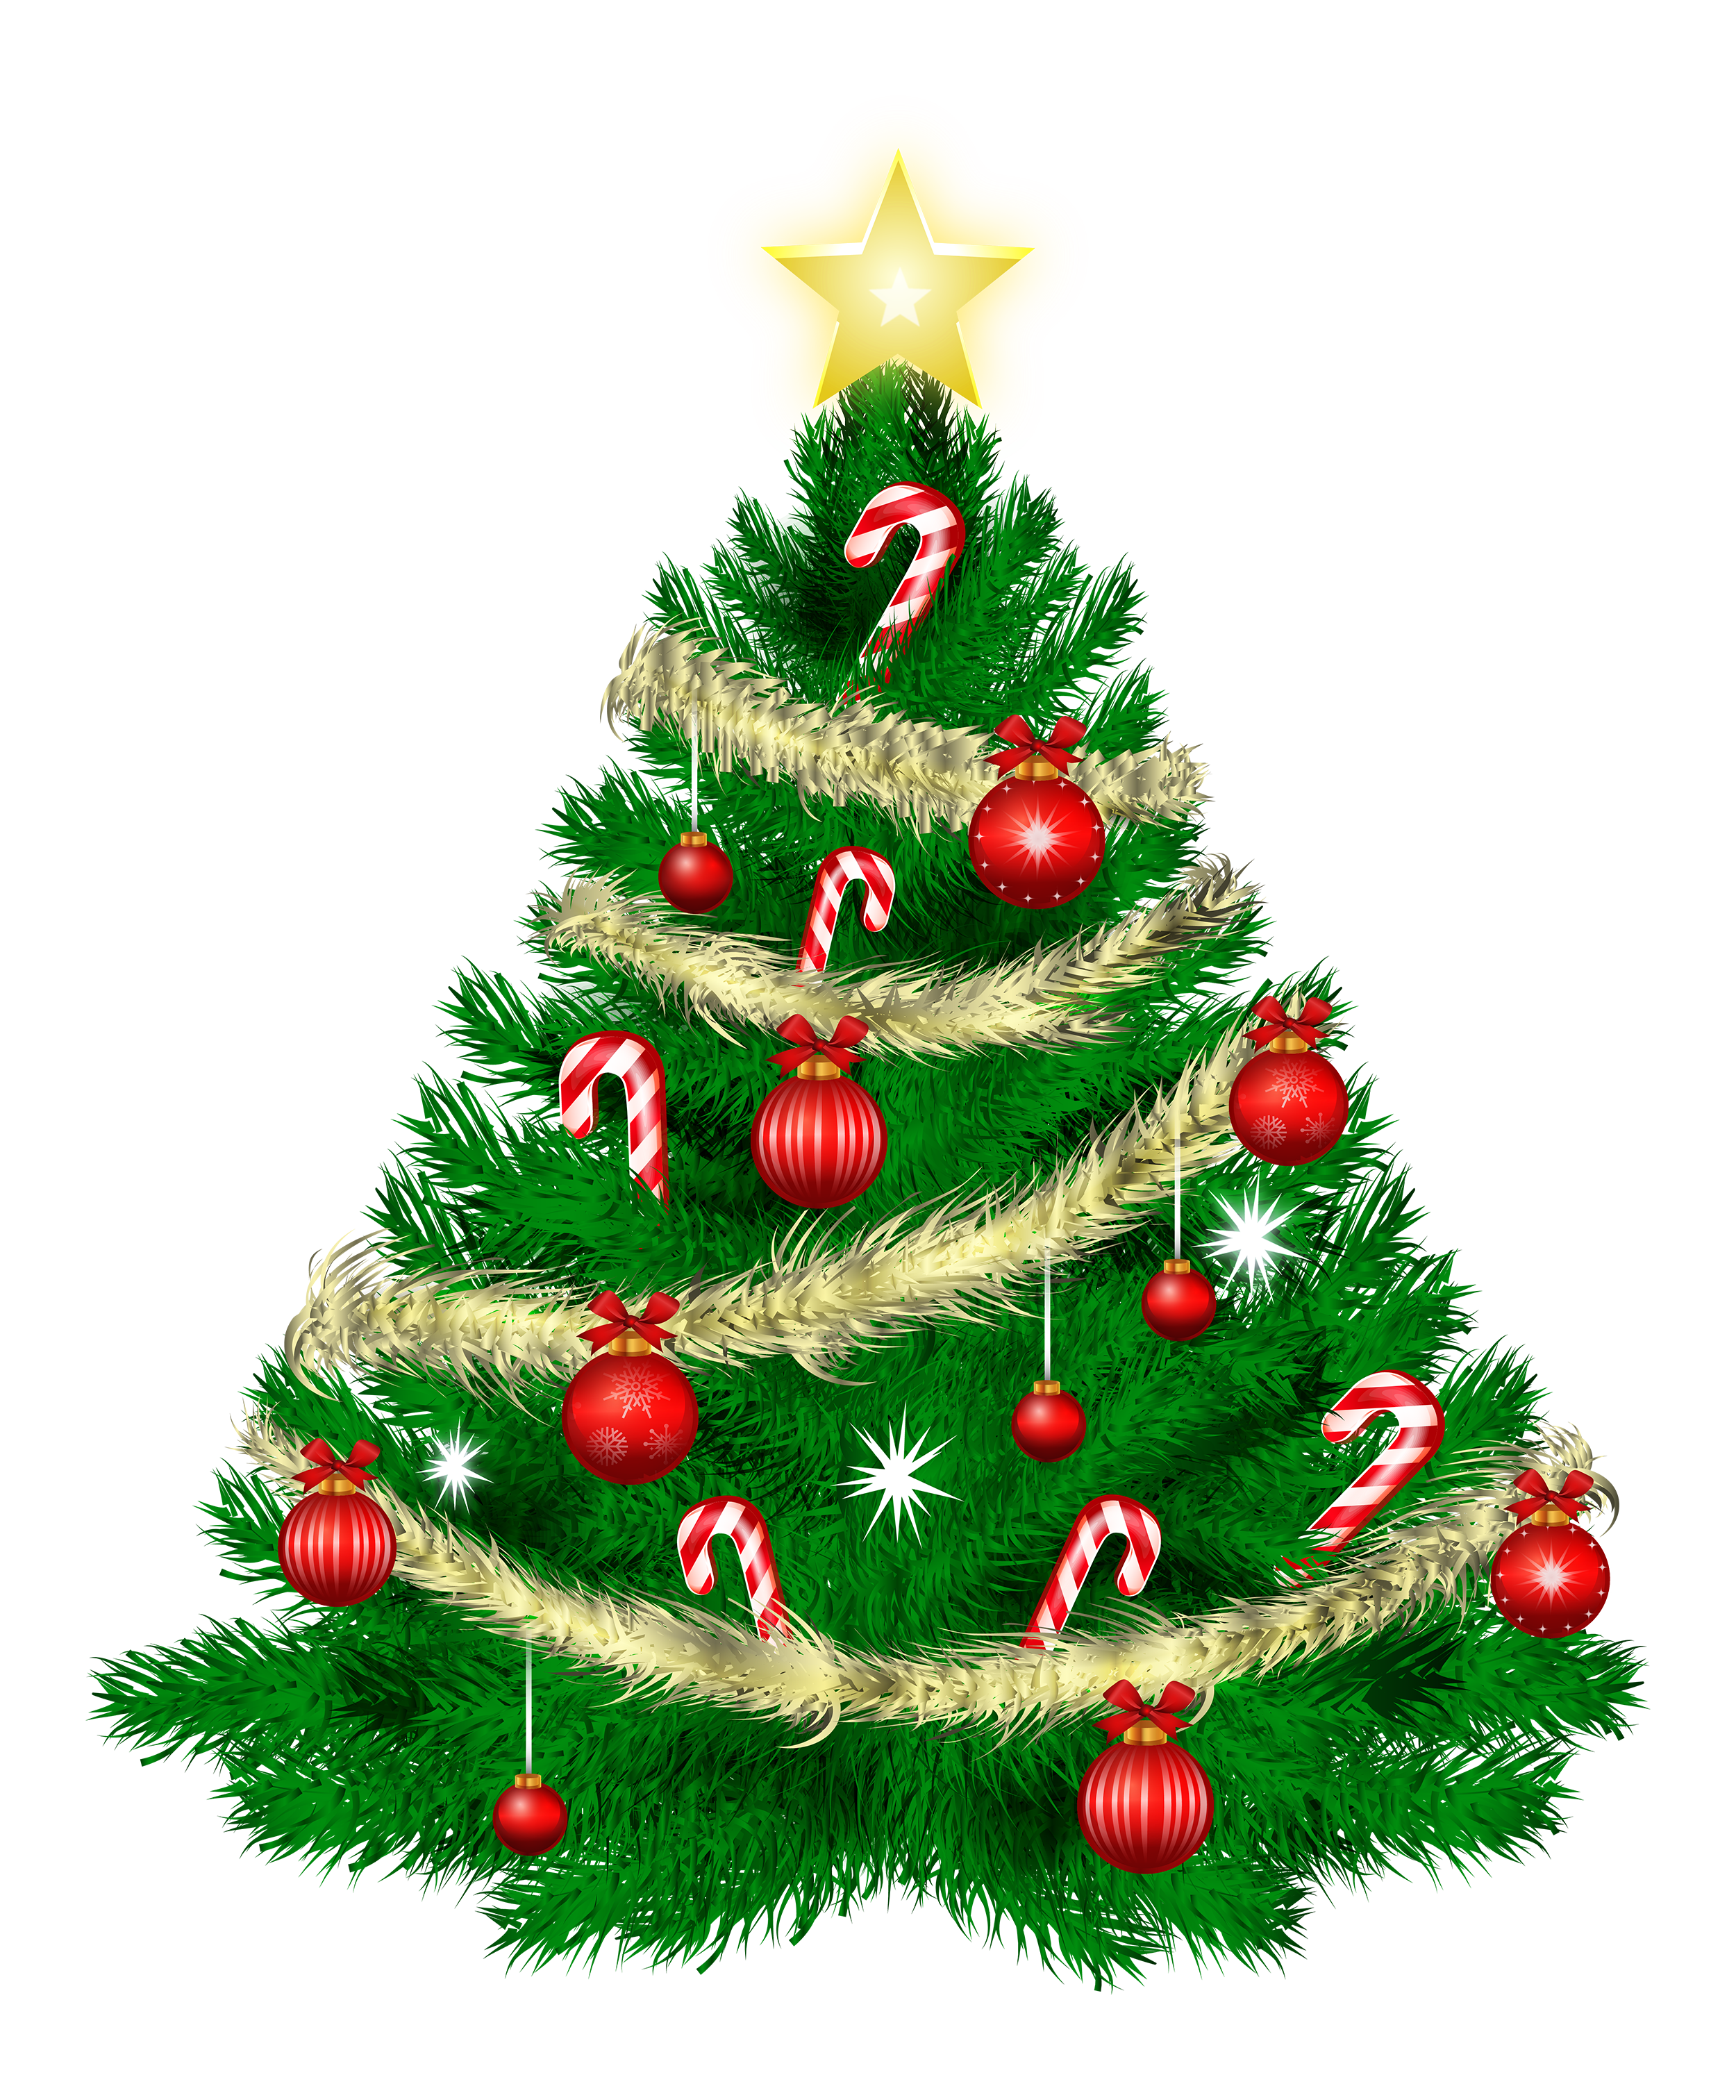 Christmas Tree Transparent Background.Christmas Tree Ornaments Transparent Pictures 35273 Free